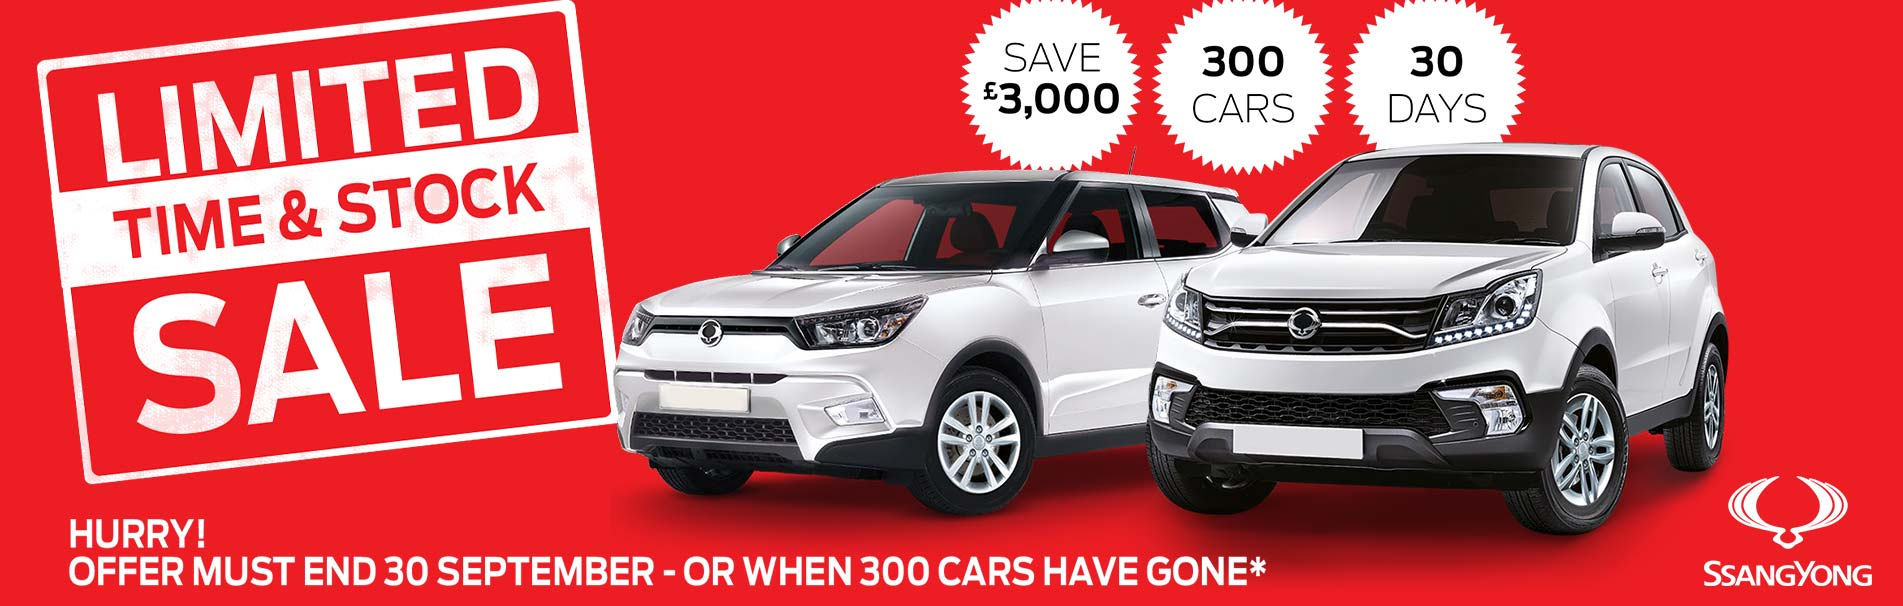 30-days-ssangyong-300-cars-on-sale-save-3000-sli